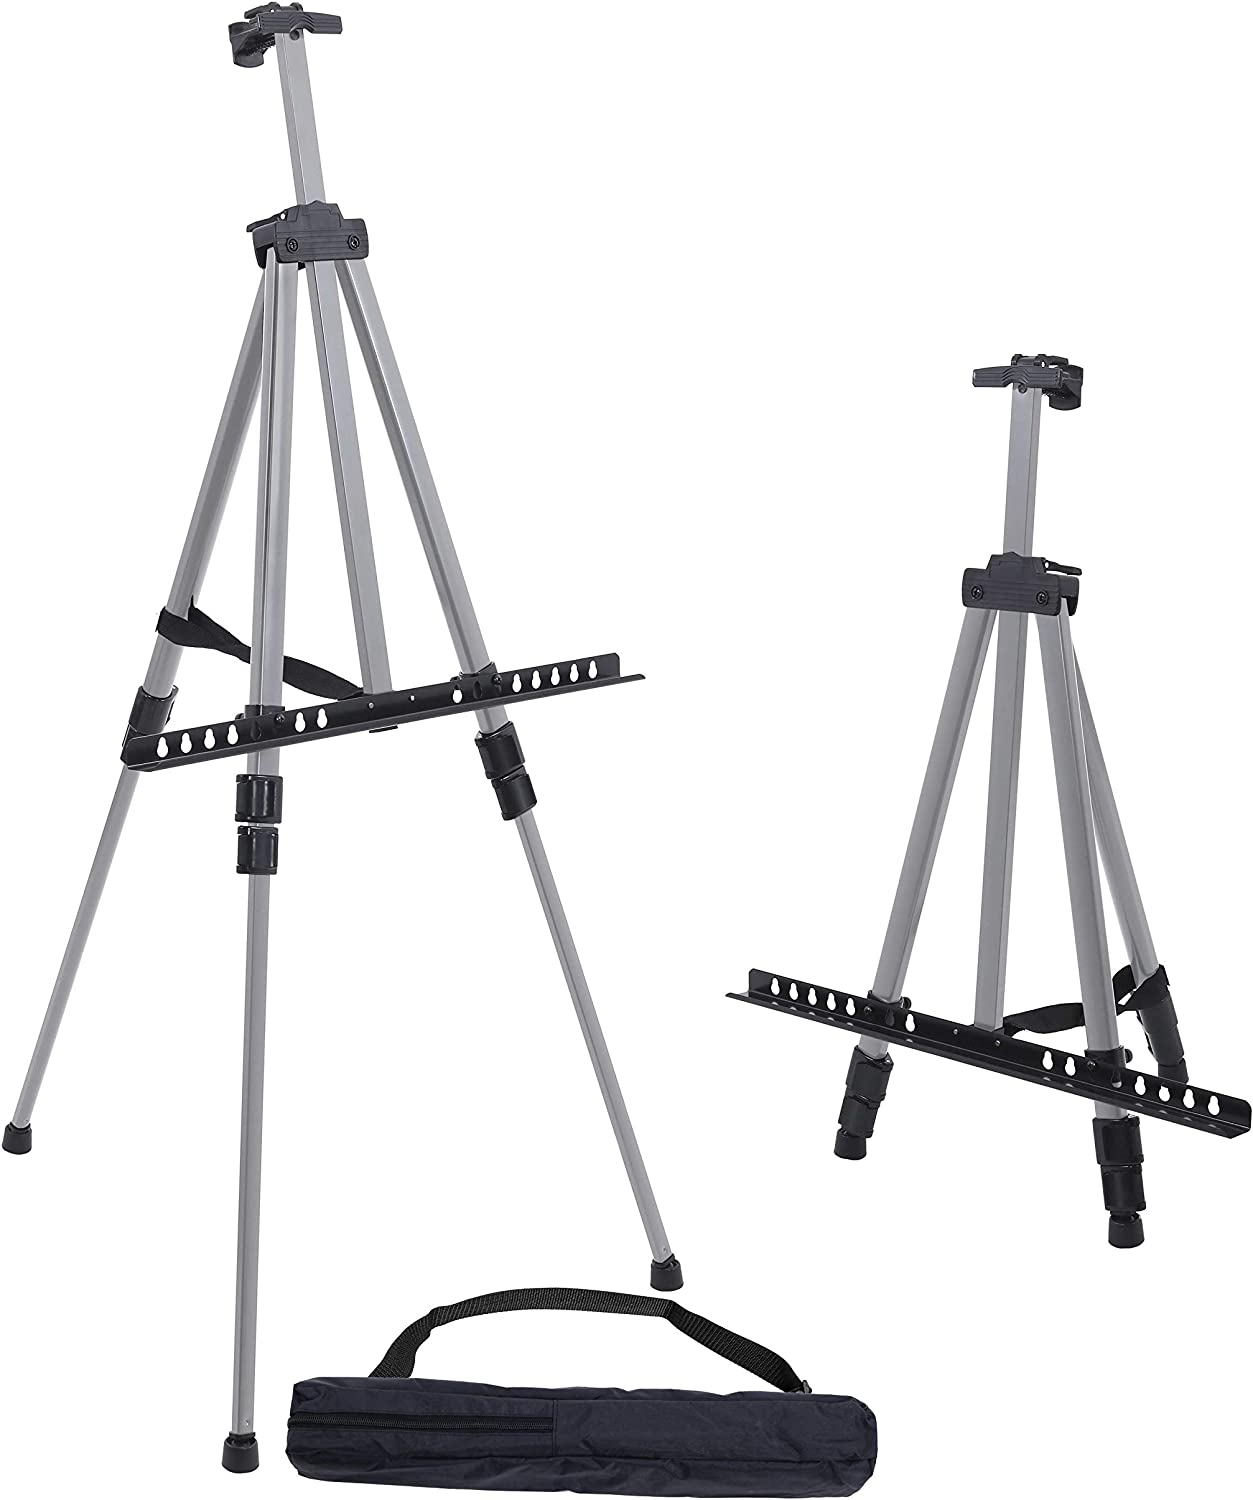 "U.S. Art Supply 66"" Sturdy Silver Aluminum Tripod Artist Field and Display Easel Stand - Adjustable Height 20"" to 5.5 Feet, Holds 32"" Canvas - Floor and Tabletop Displaying, Painting - Portable Bag"